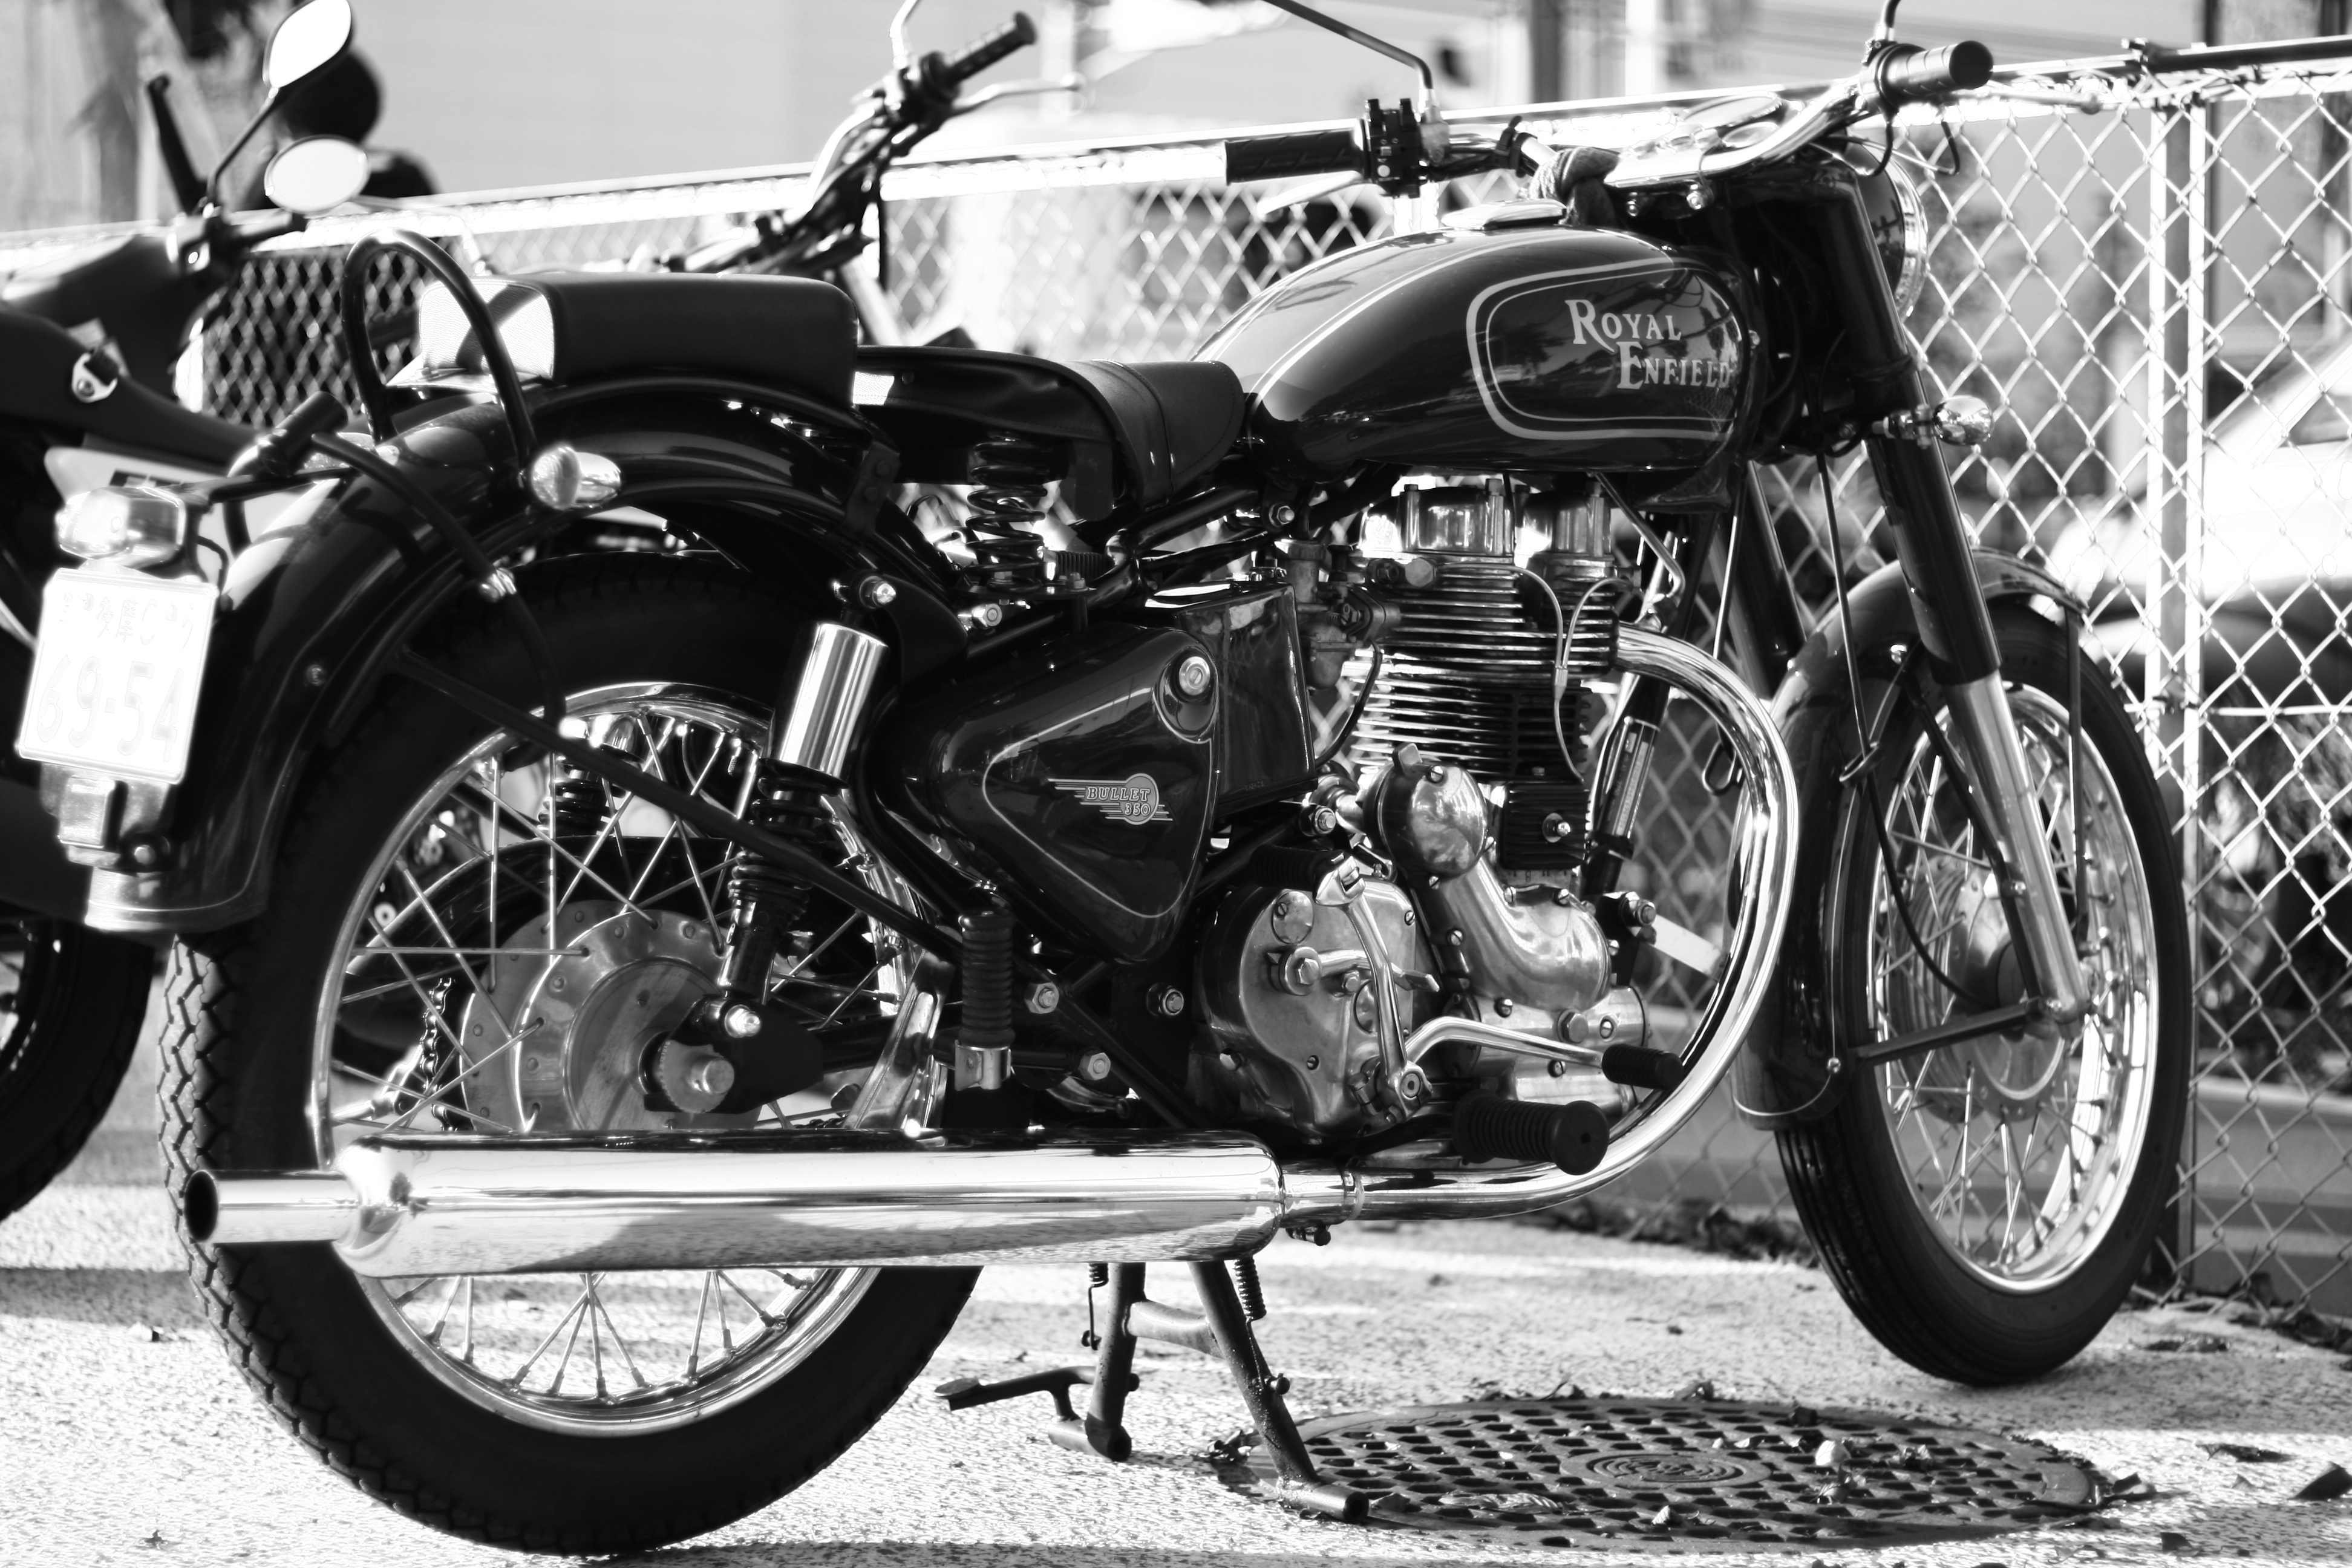 Royal Enfield Bullet 350 Classic 2009 images #123519